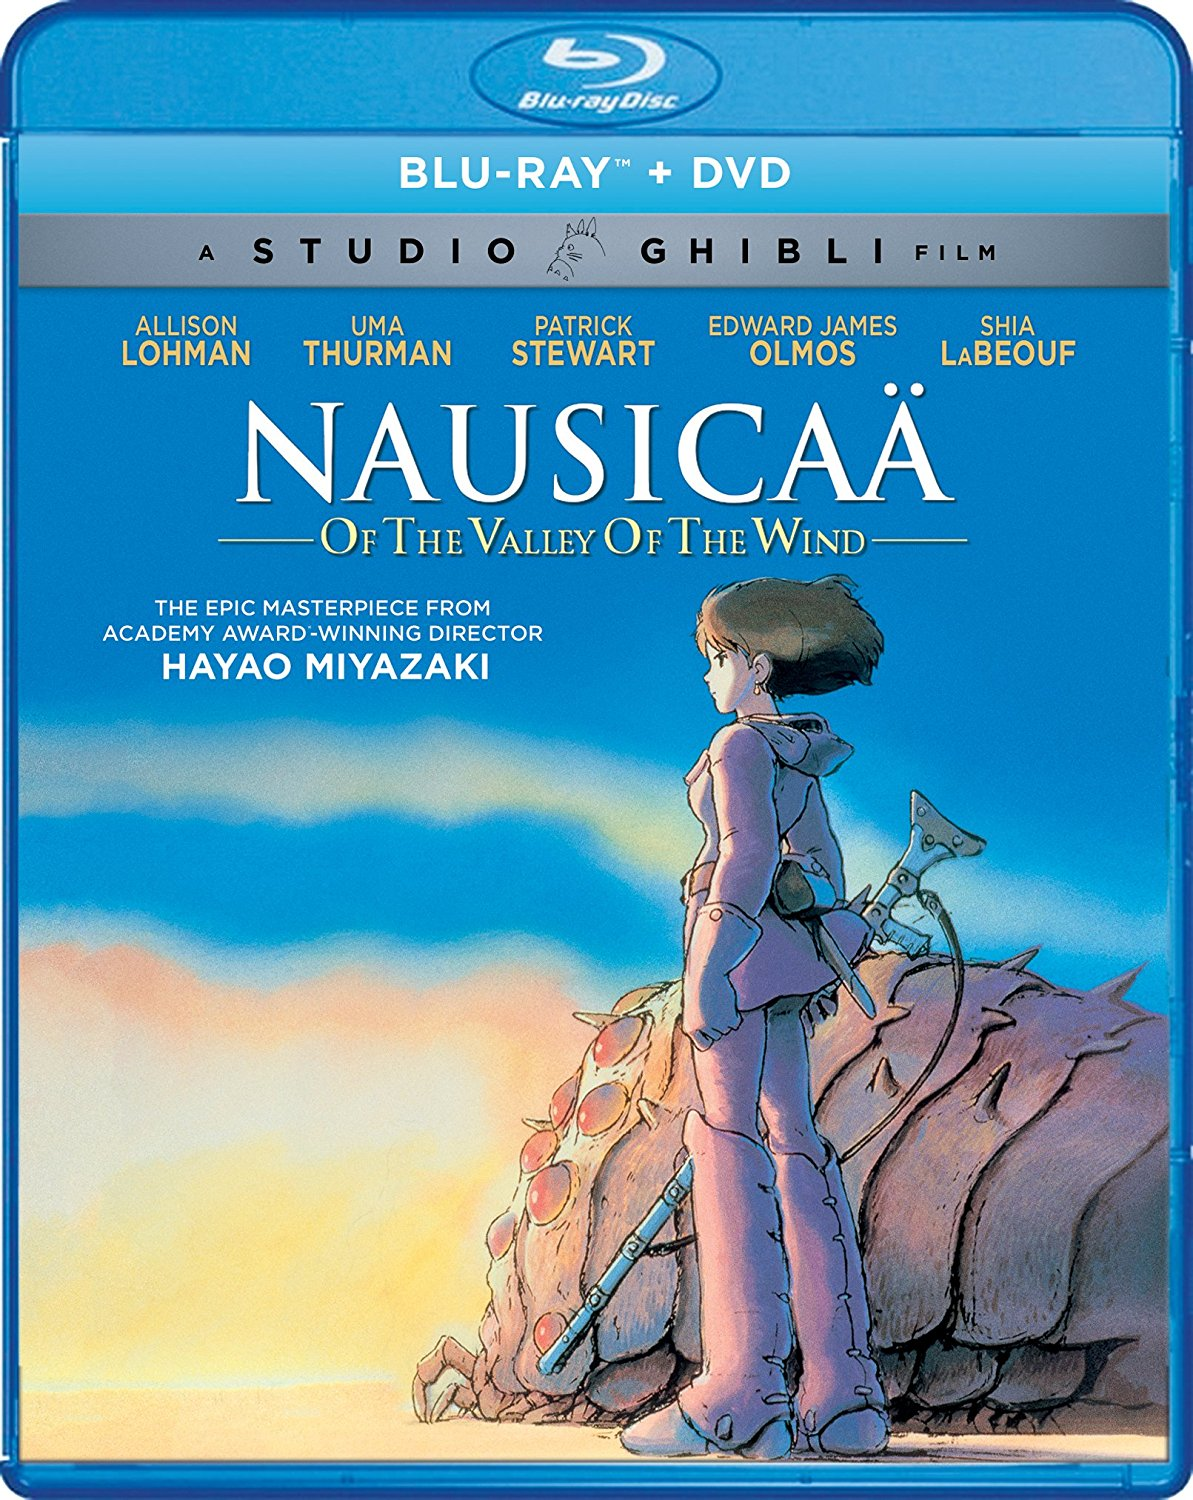 Nausicaa of the Valley of the Wind Blu-ray/DVD 826663181401